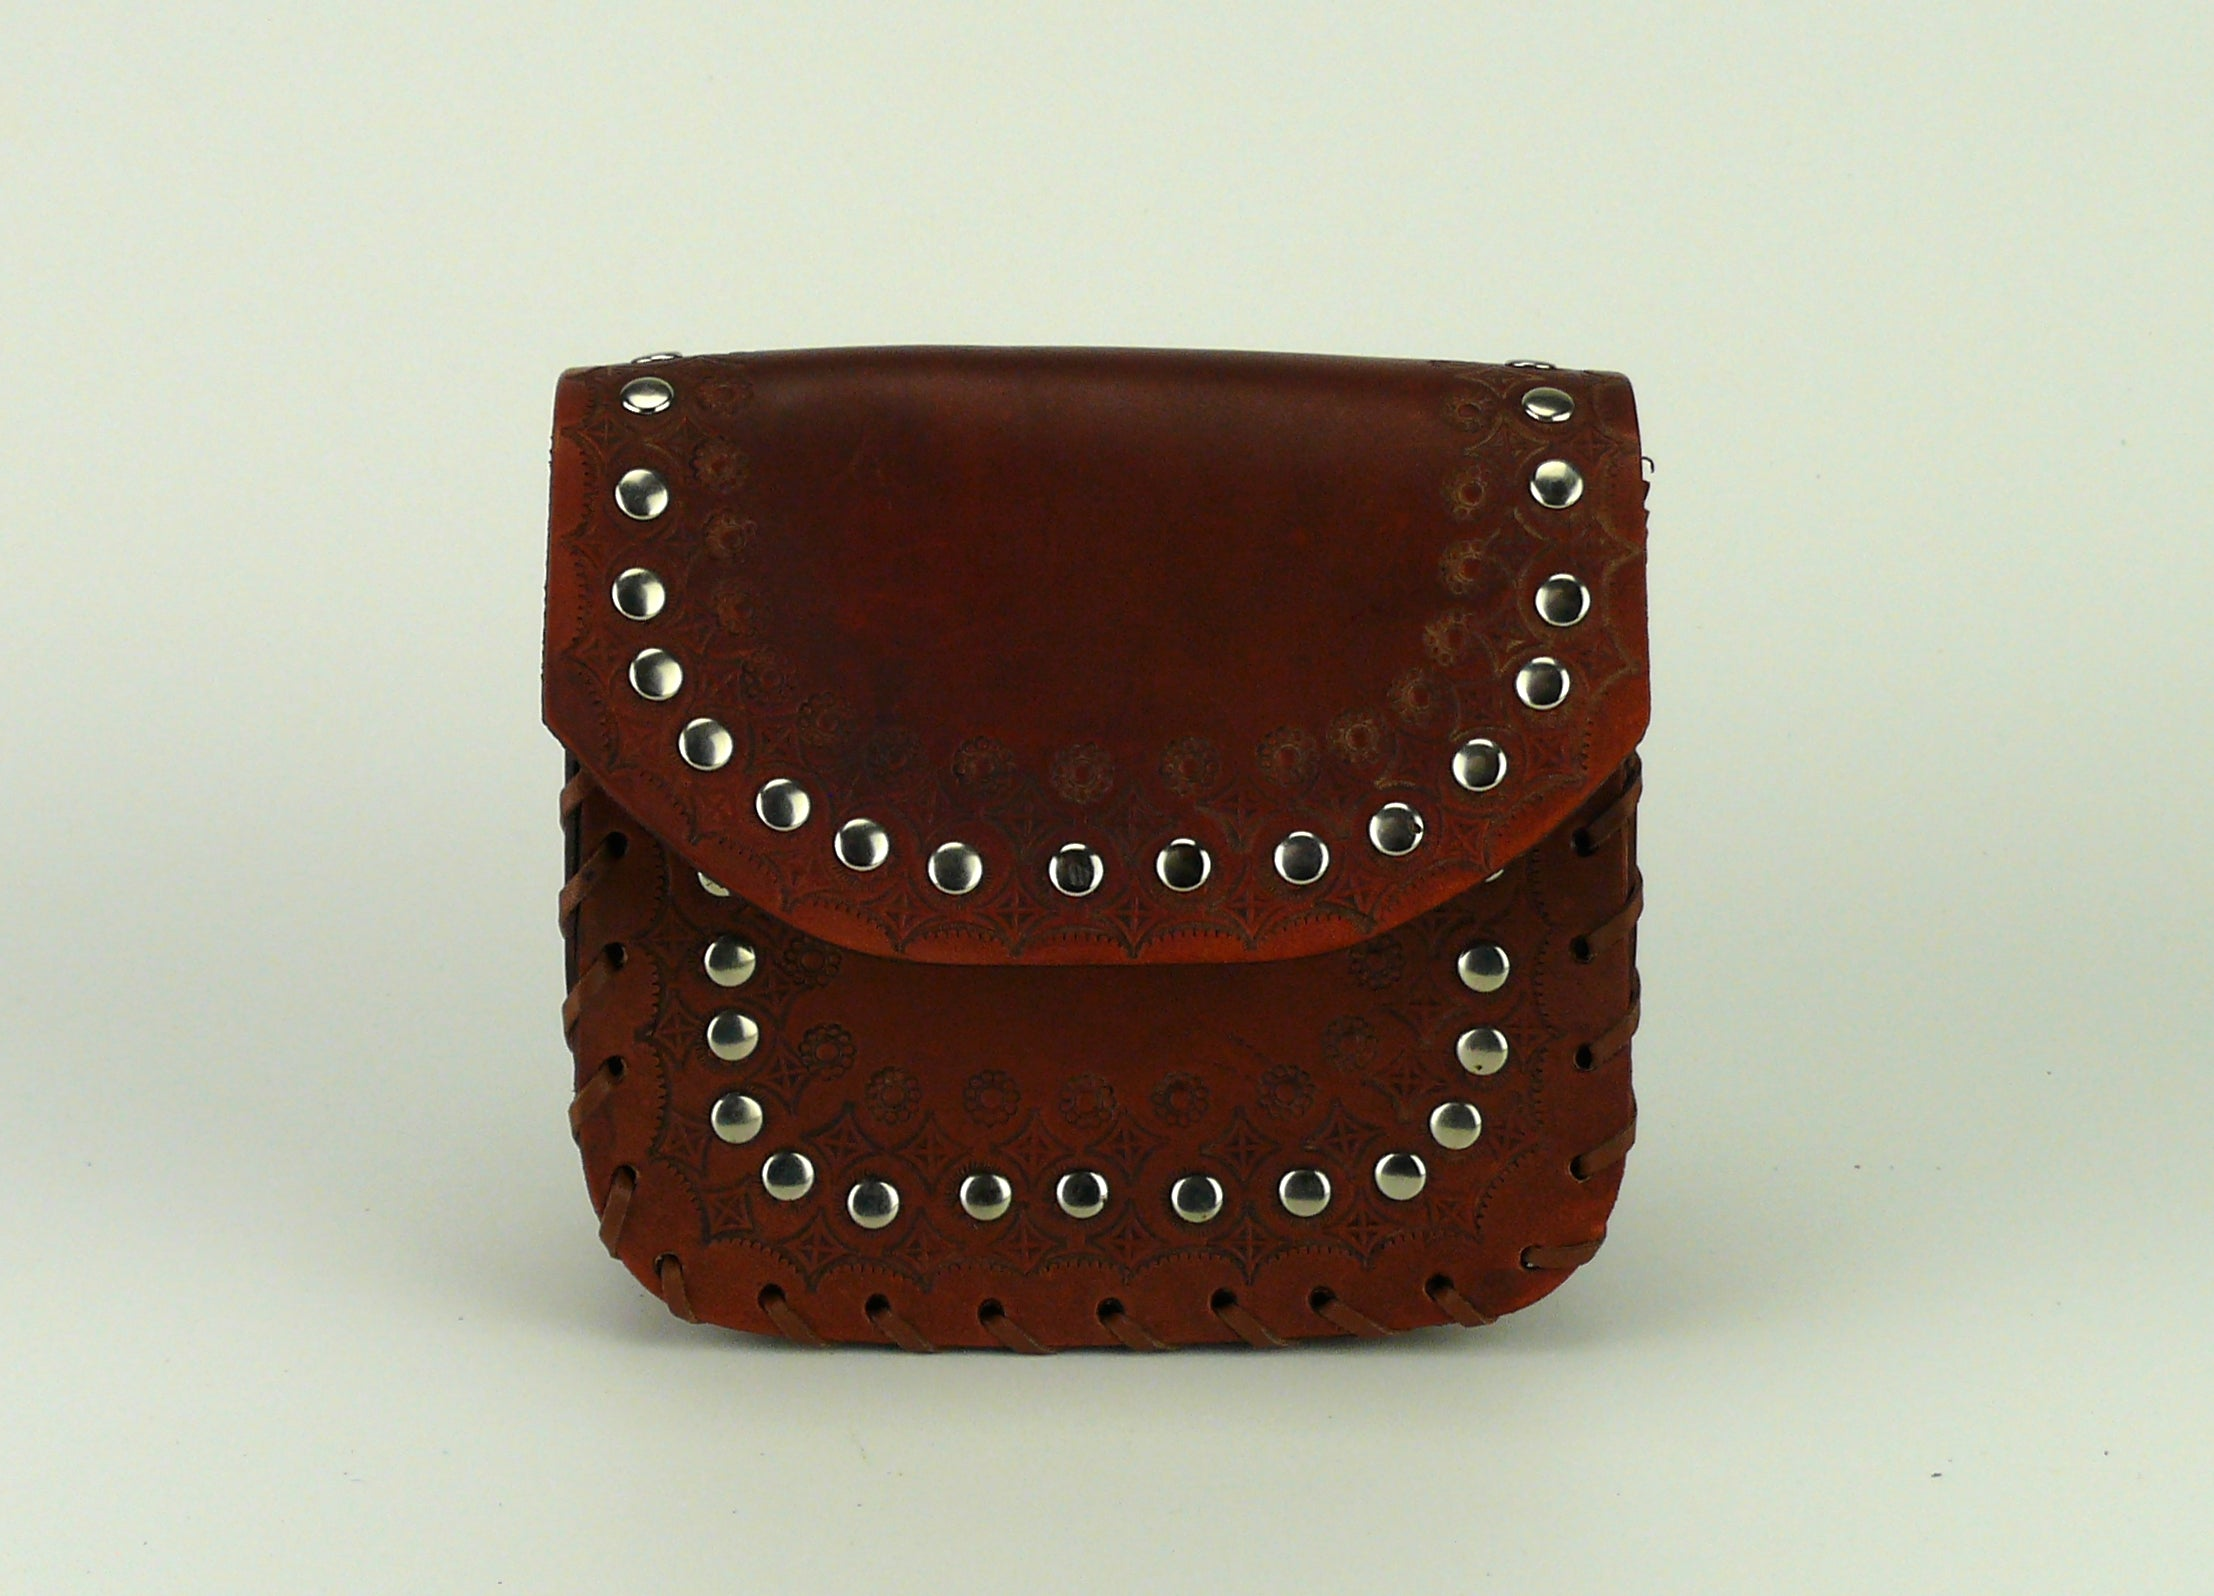 Tiggy Studded Lace - Belt Bag Tan